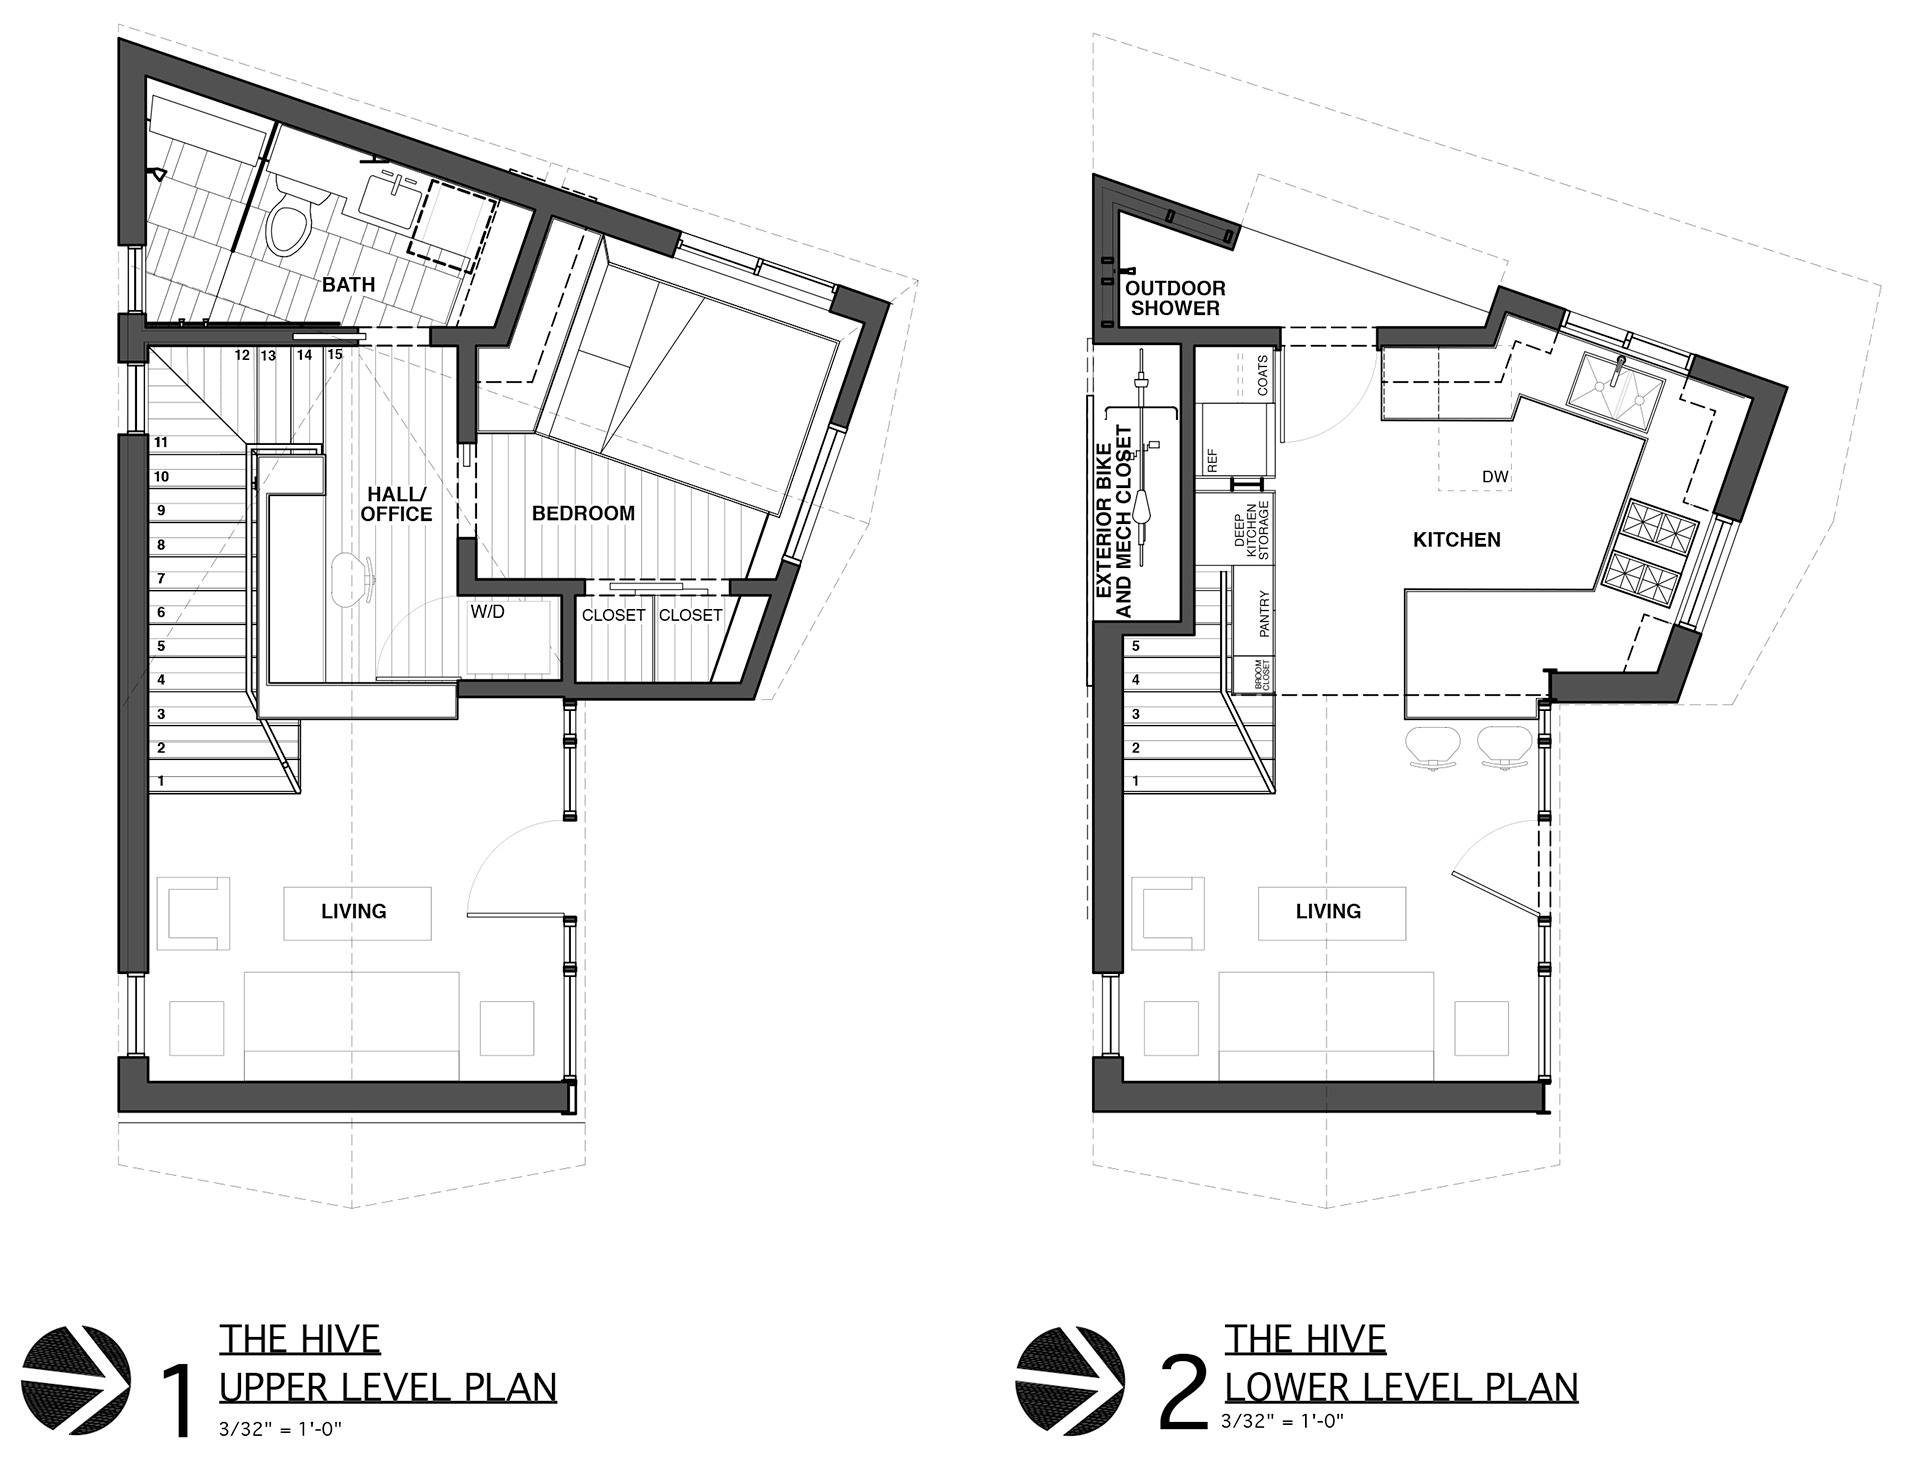 Layout plan of The Hive | The Hive| Nicole Blair| Studio 512 | STIR